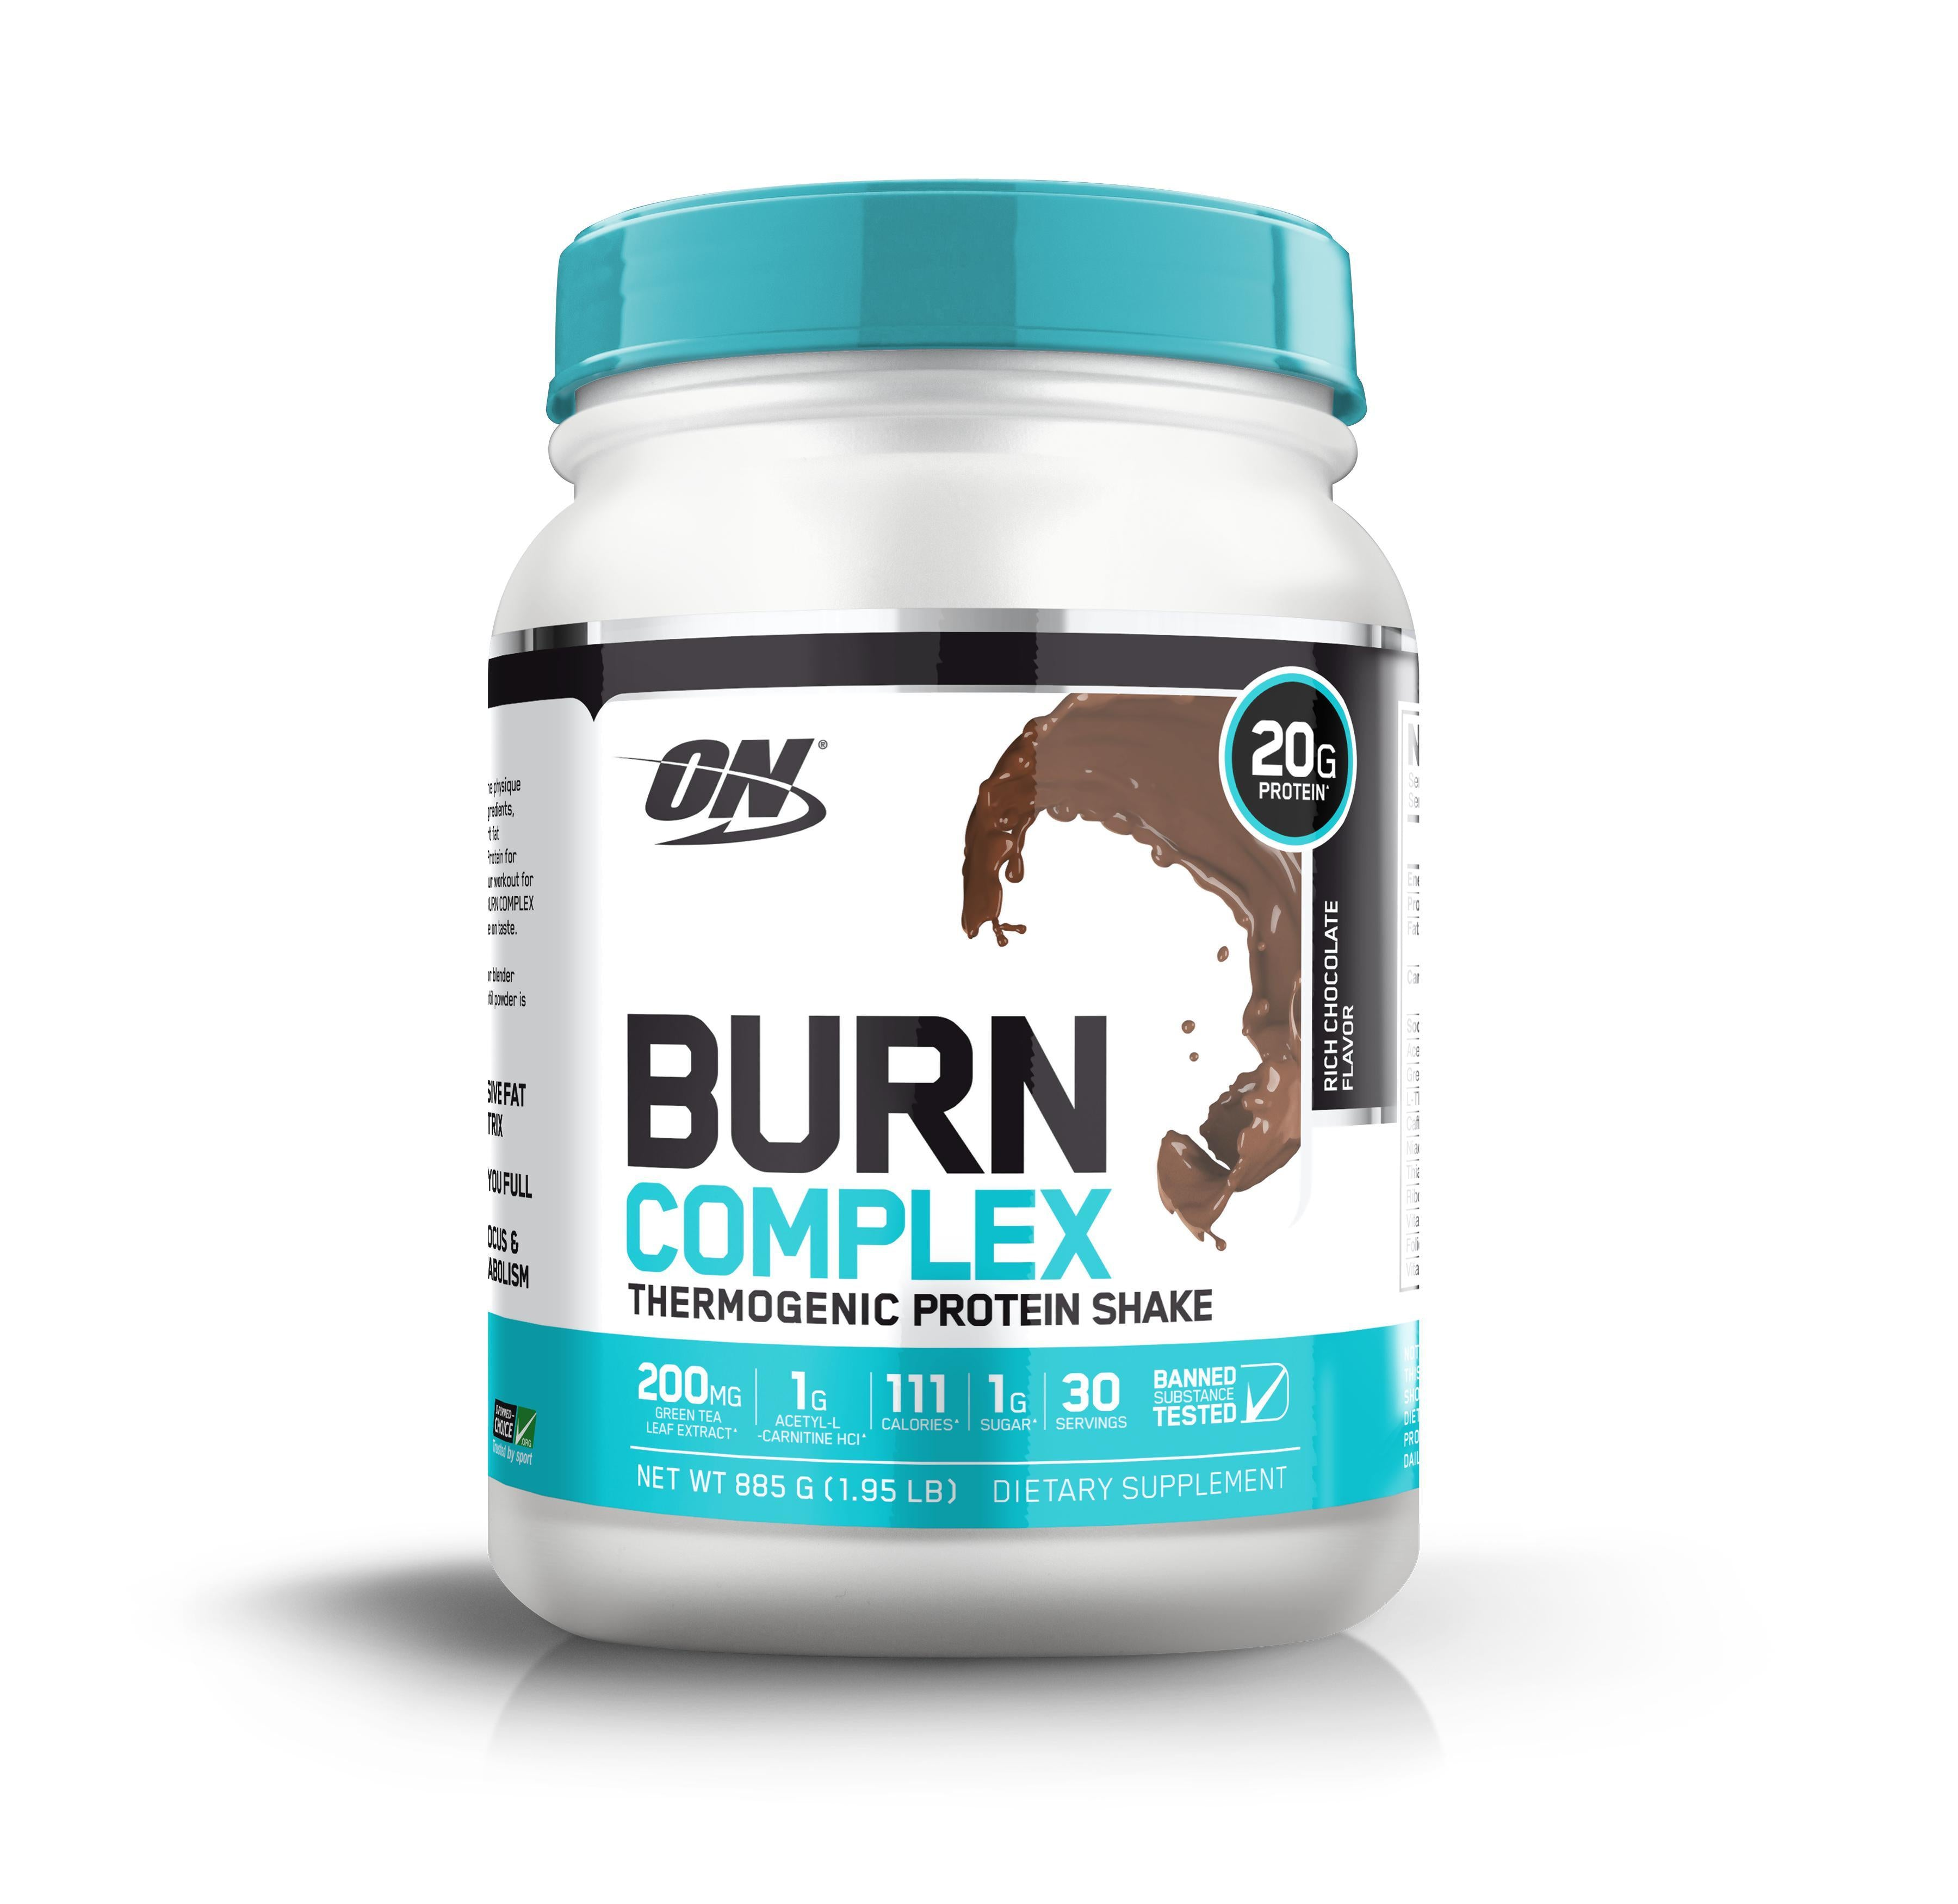 ON Burn Complex Protein-Protein - Weight Loss Protein-Optimum Nutrition-30 Serves-RICH CHOCOLATE-Thrive Health and Nutrition